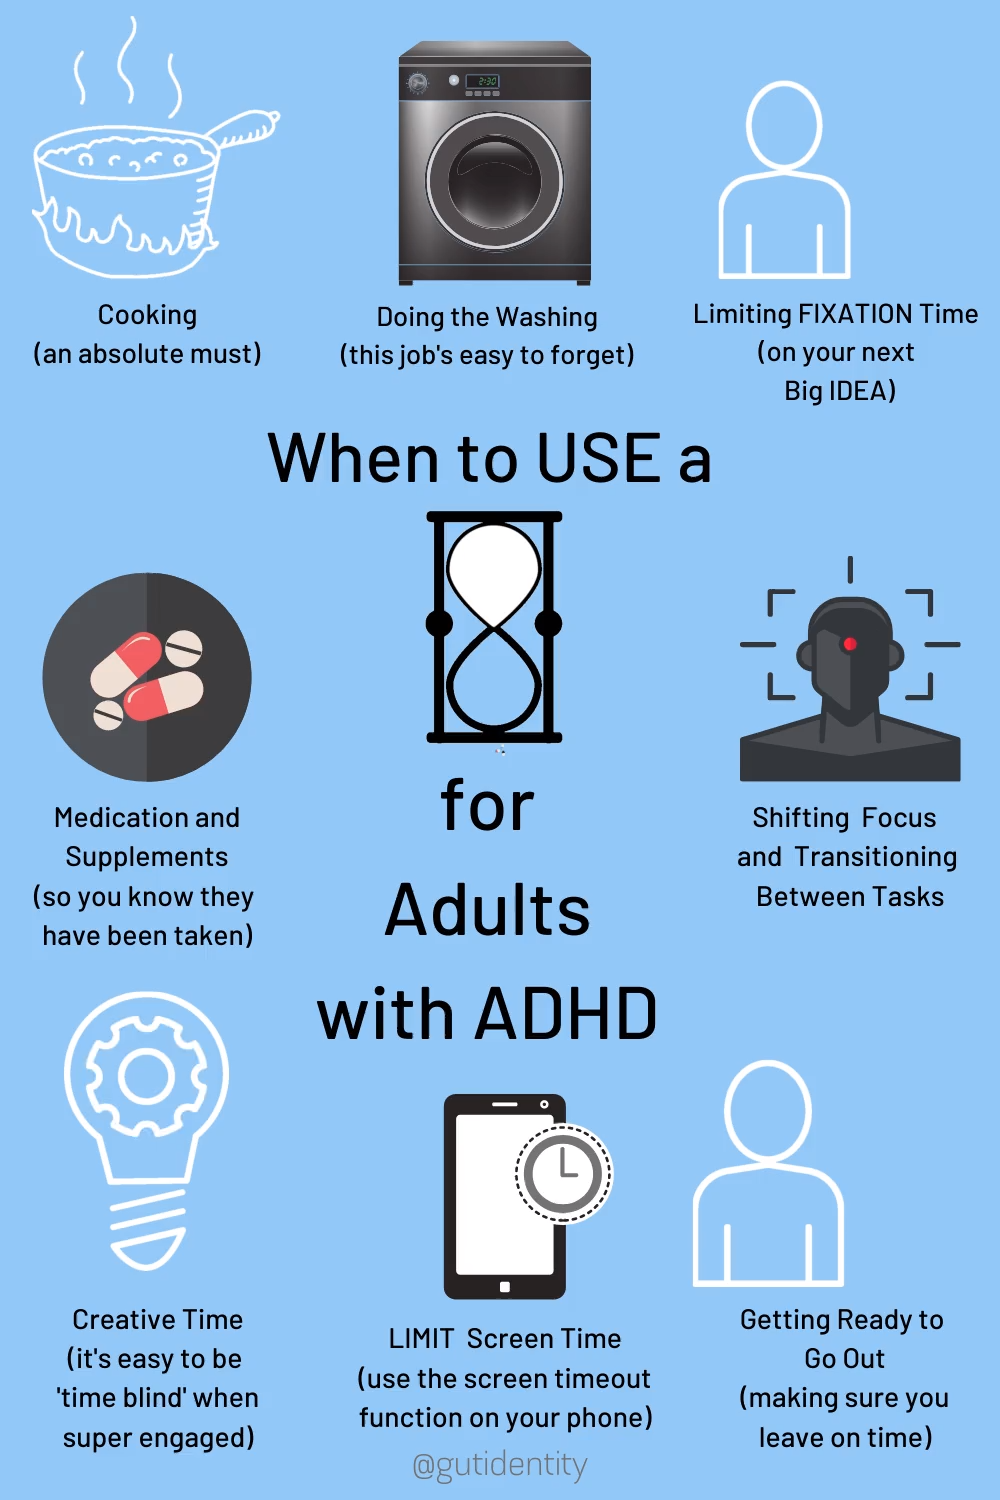 Adults with ADHD often lose track of time.  This can happen from being highly engaged in an activity, or from getting easily distracted and losing focus.  Timers can be effective for planning, increasing productivity, daily routines, and ensuring that hours don't fly by without you noticing. Timer use can help reduce stress, enable you to get stuff done and give you a feeling of control and structure throughout your day.